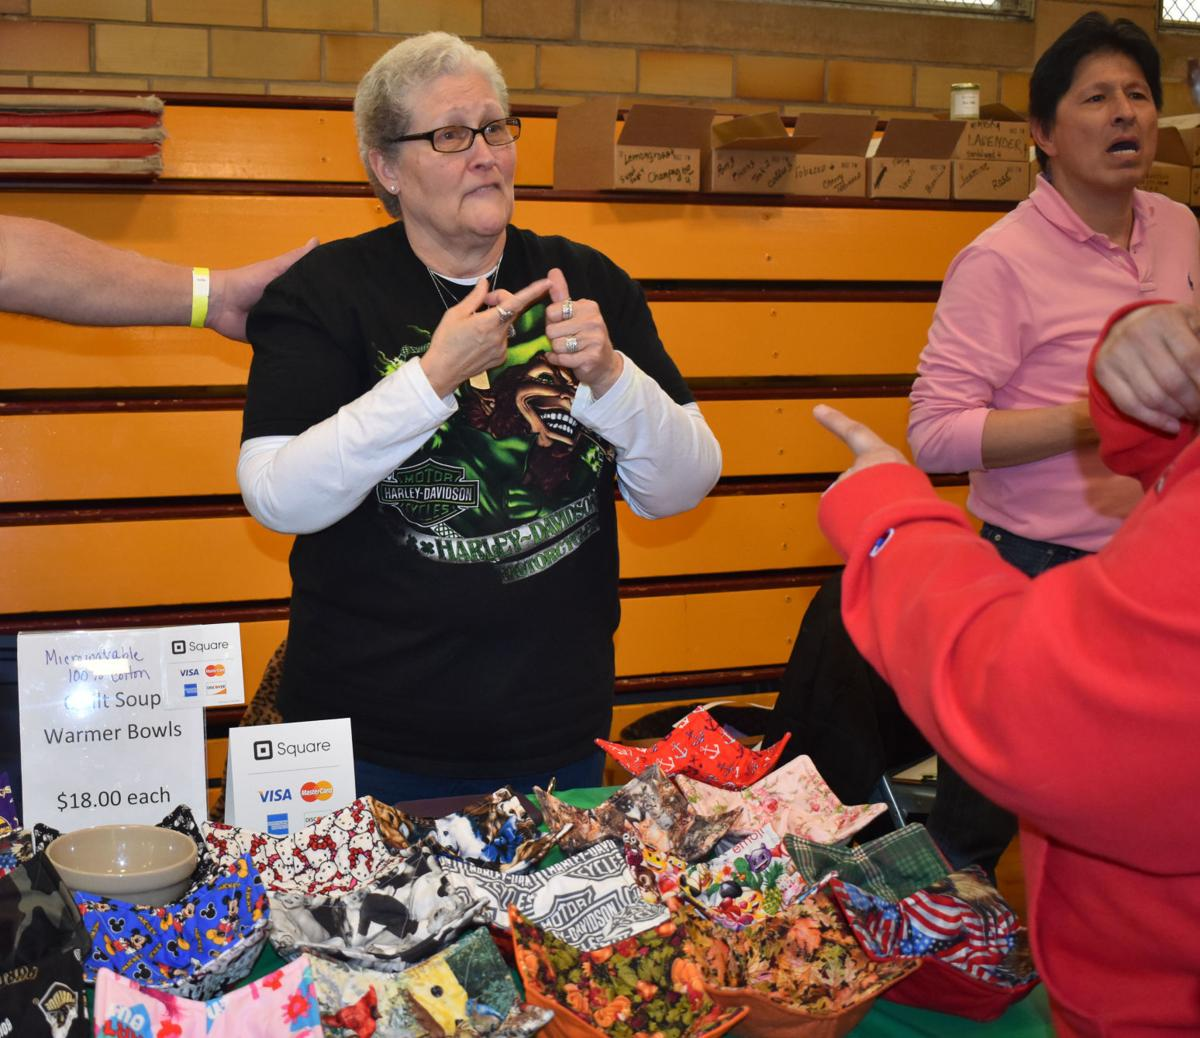 GALLERY: Expo at MSAD brings awareness to deaf business